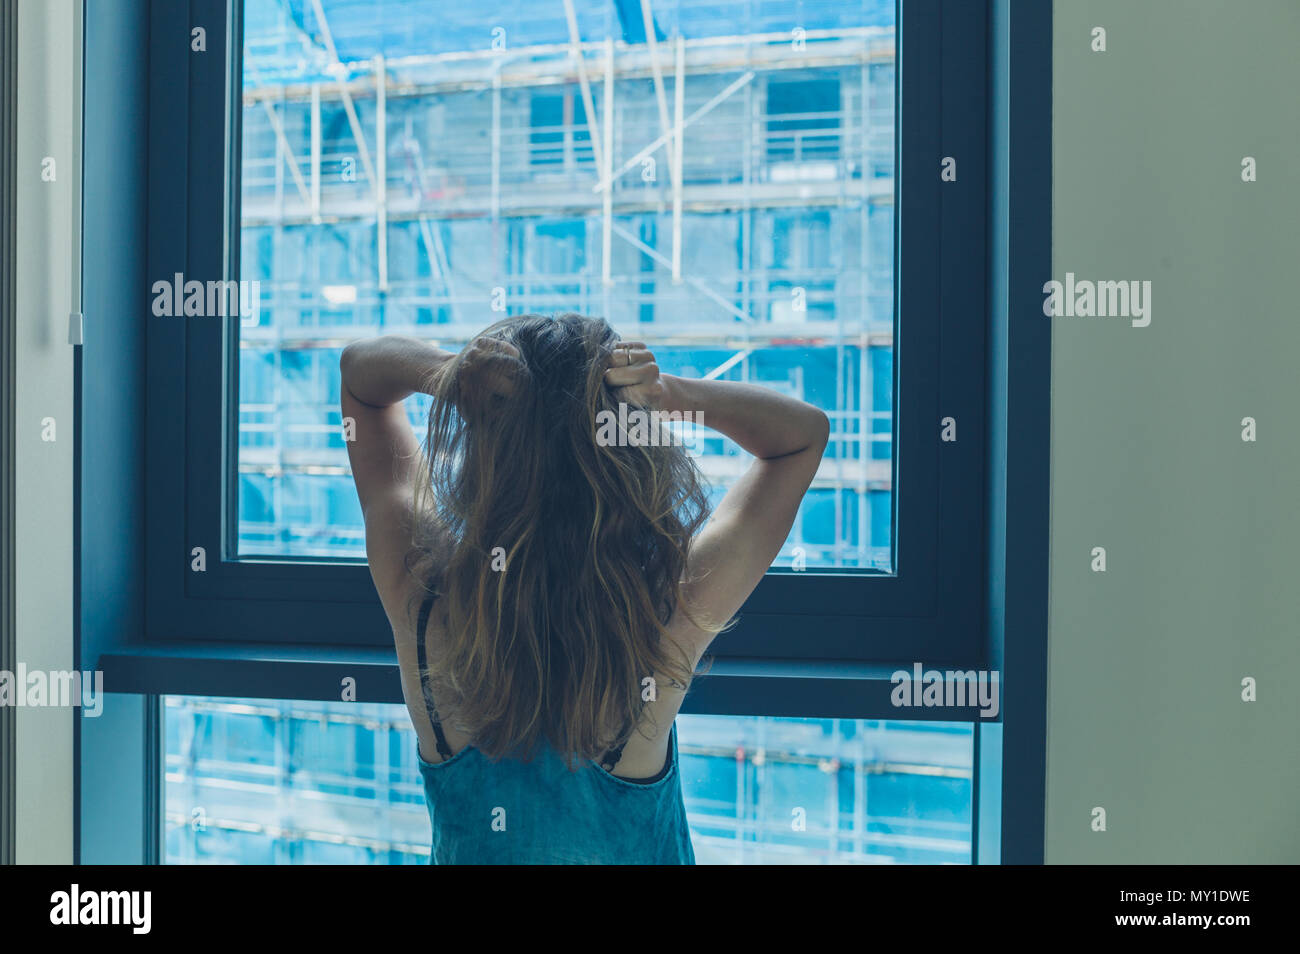 A young woman by the window in a high rise is annoyed by the building works outside - Stock Image